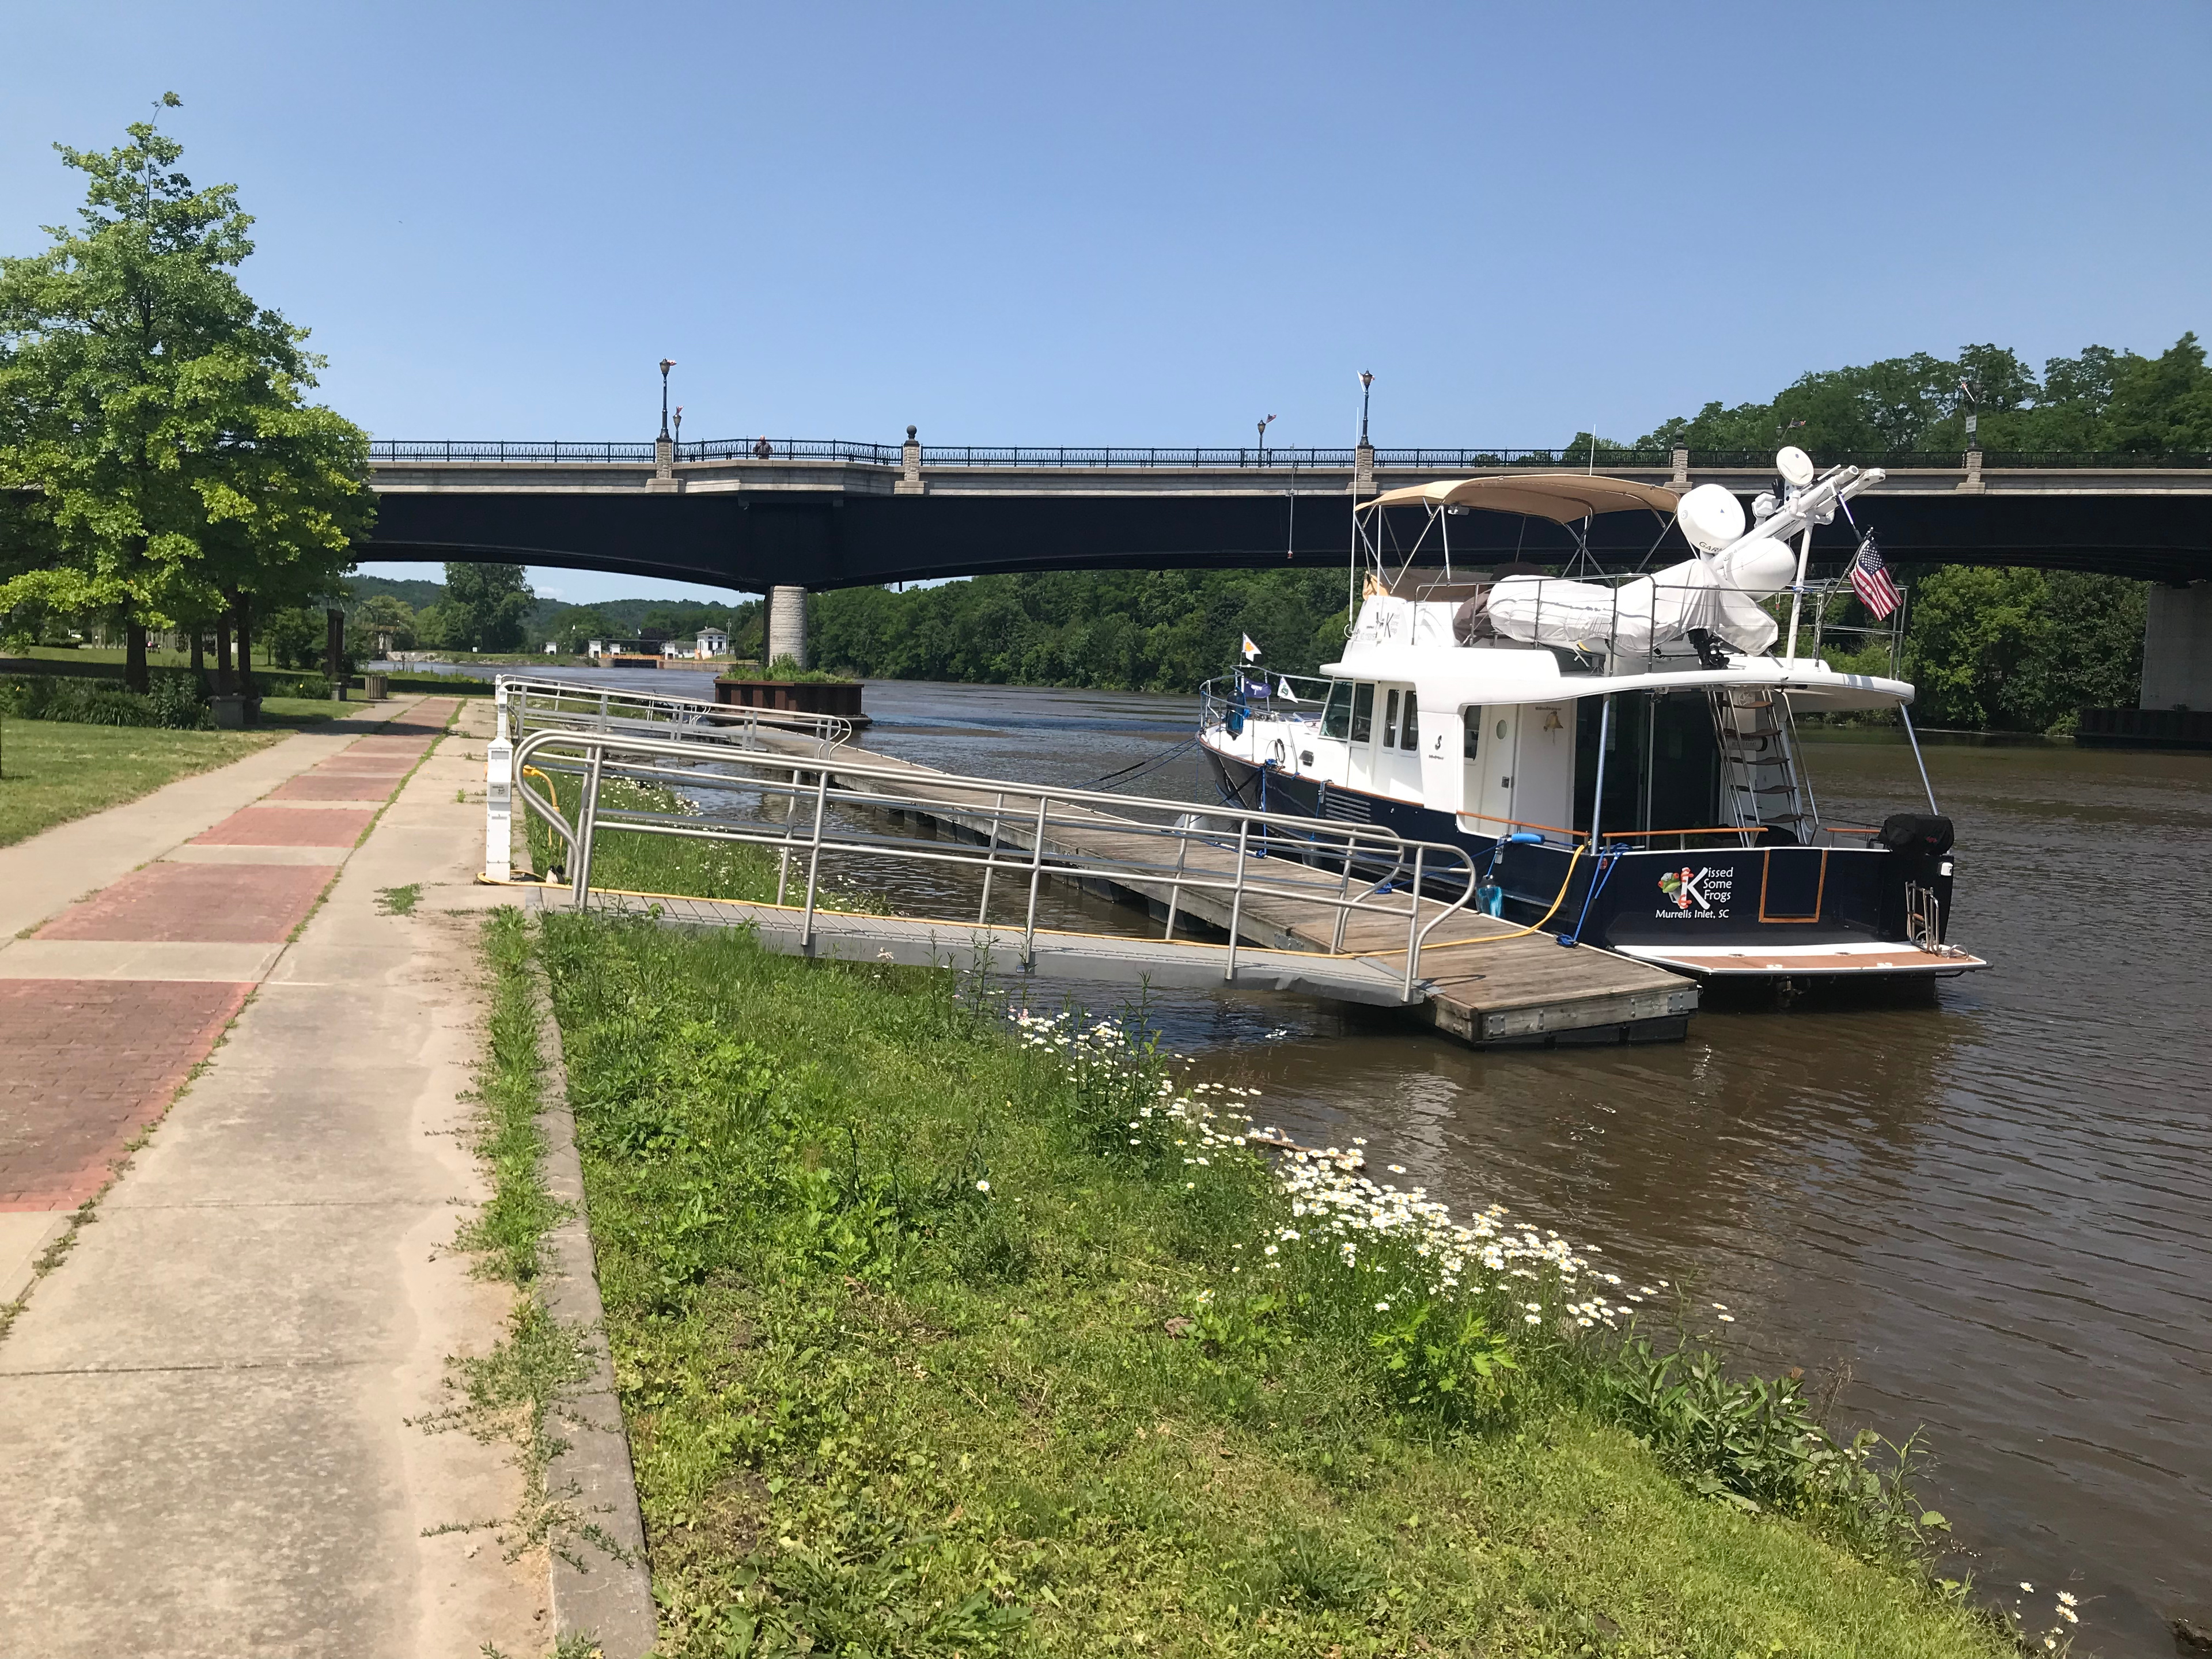 Docked in Canajoharie